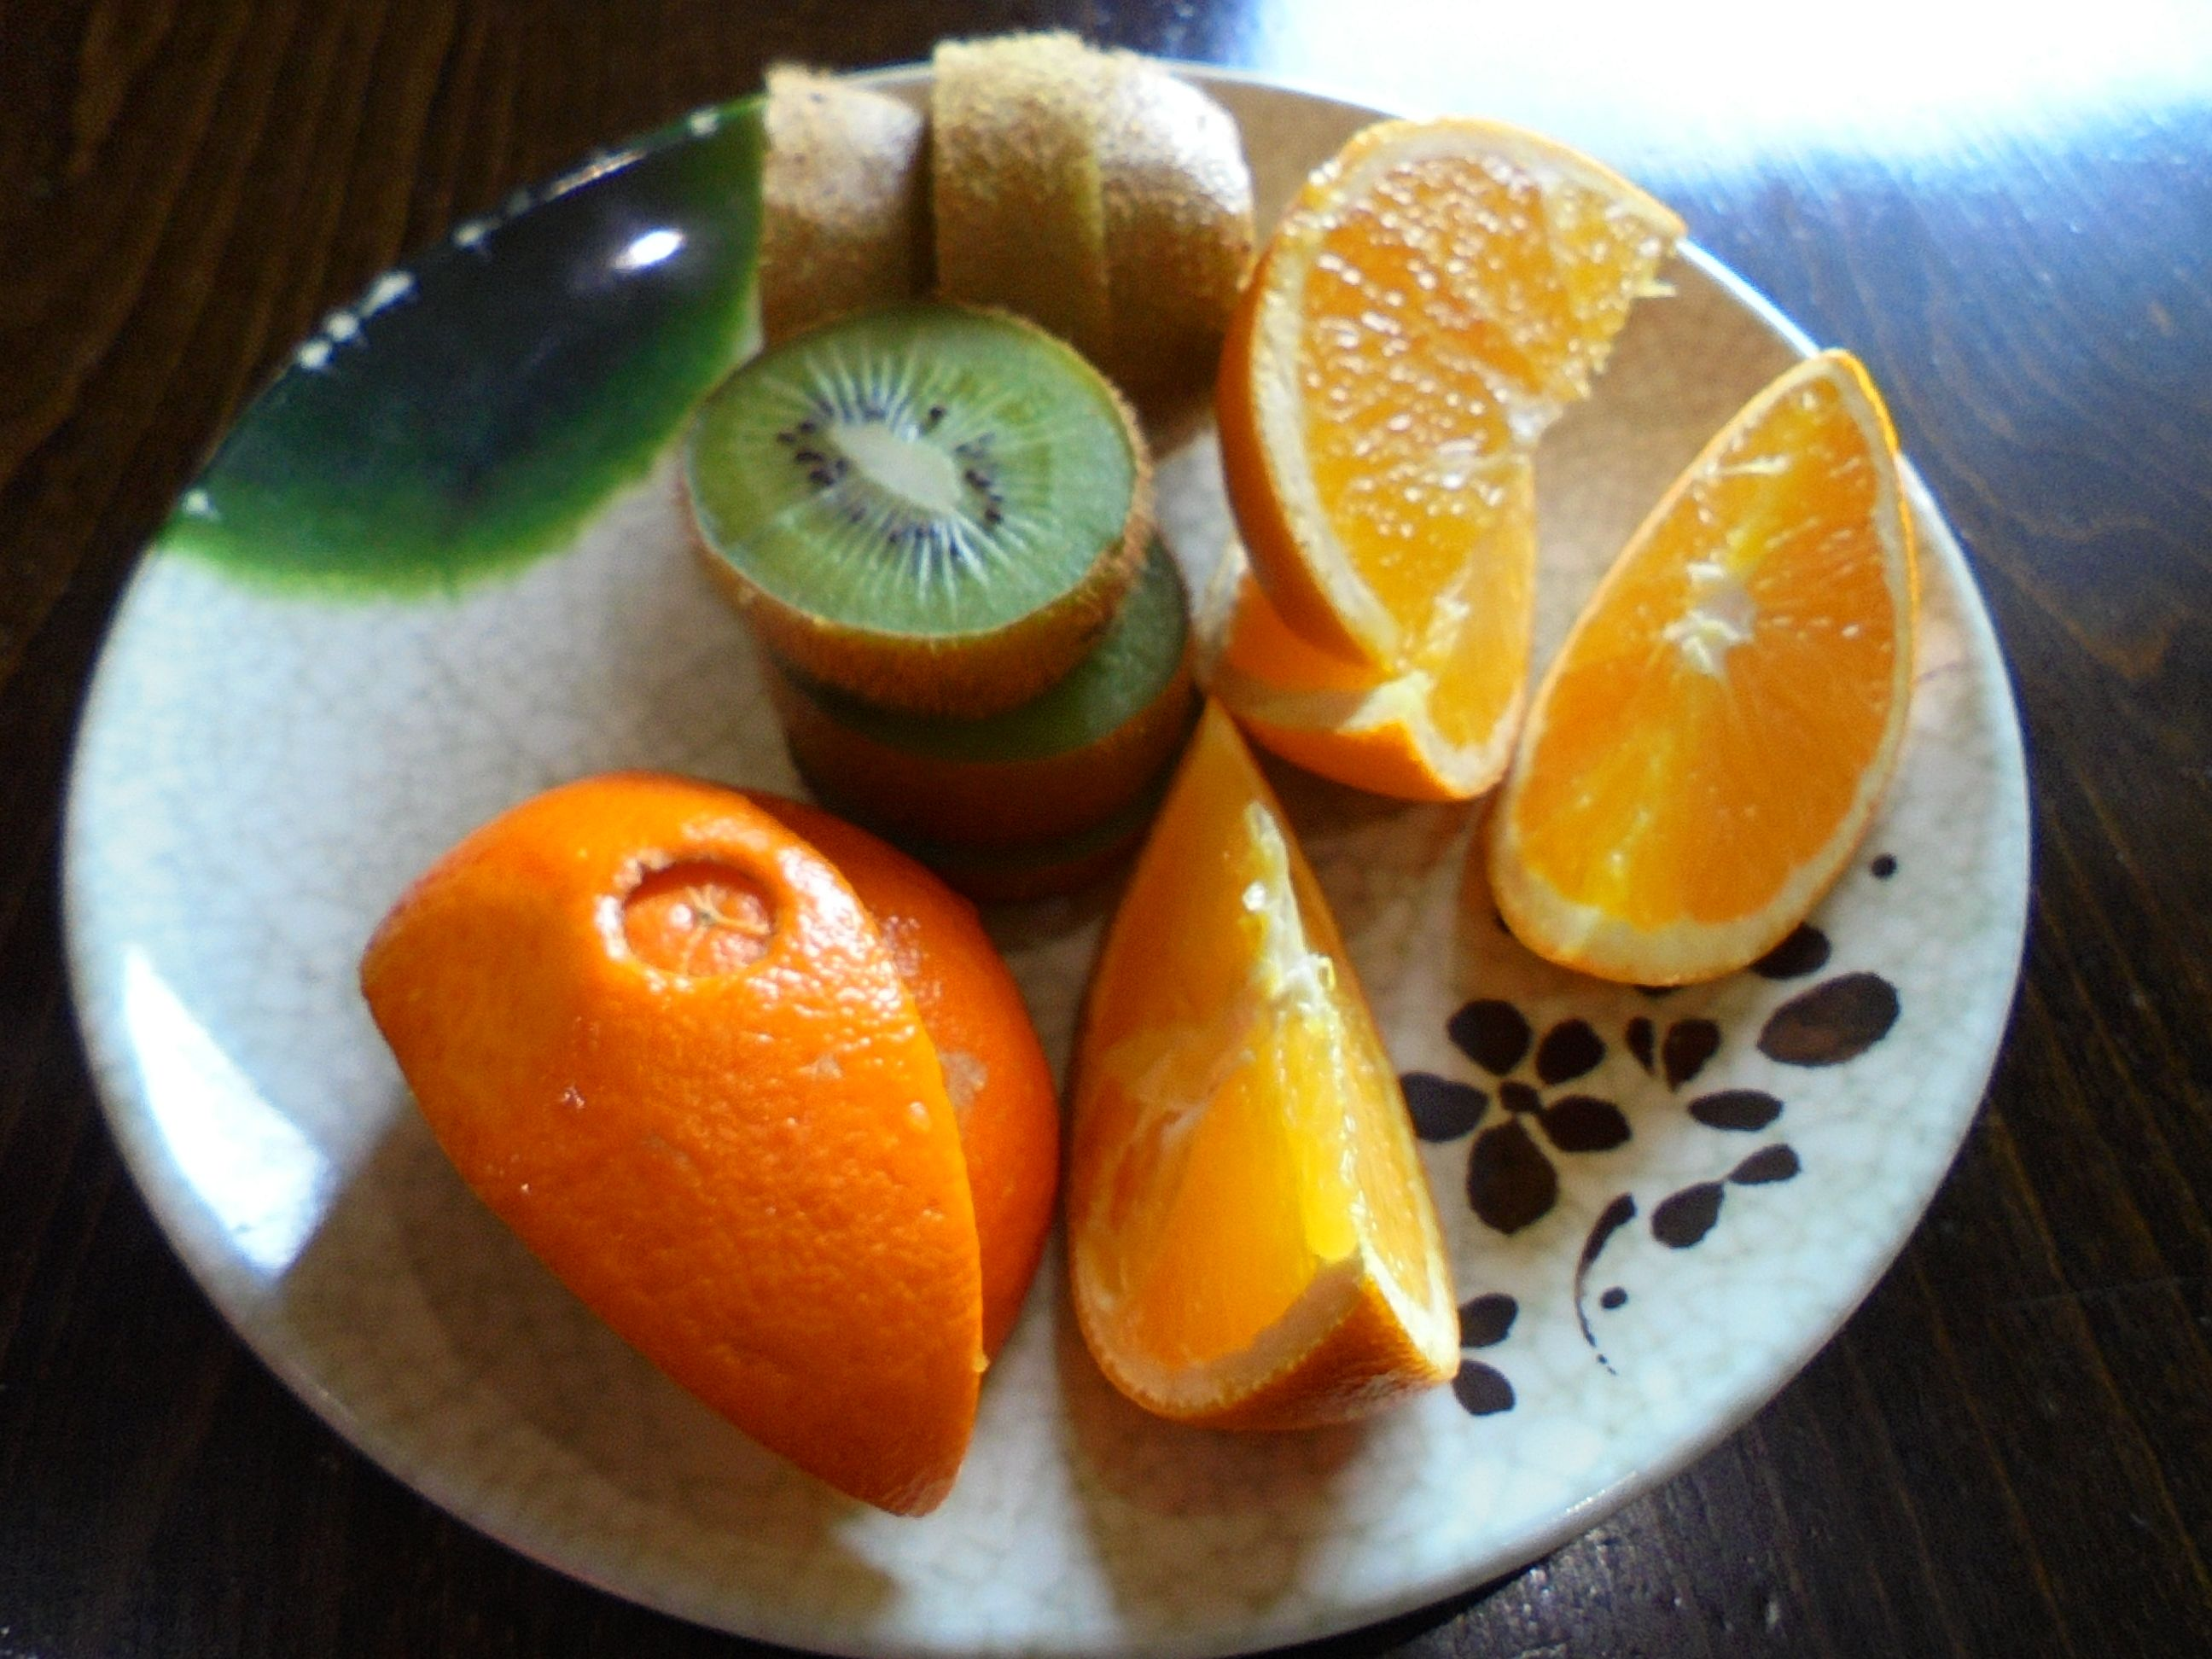 #SlicedOrange and #slicedKiwi as #dessert - www.drewrynewsnetwork.com